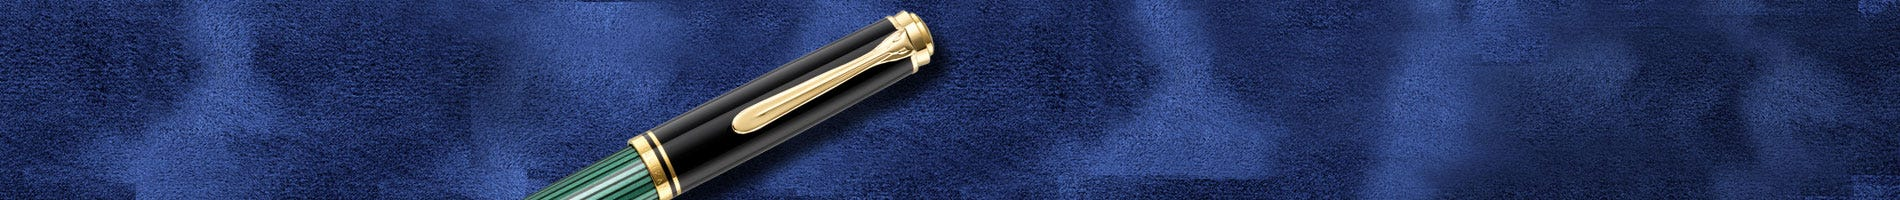 pelikan souveran fountain pen